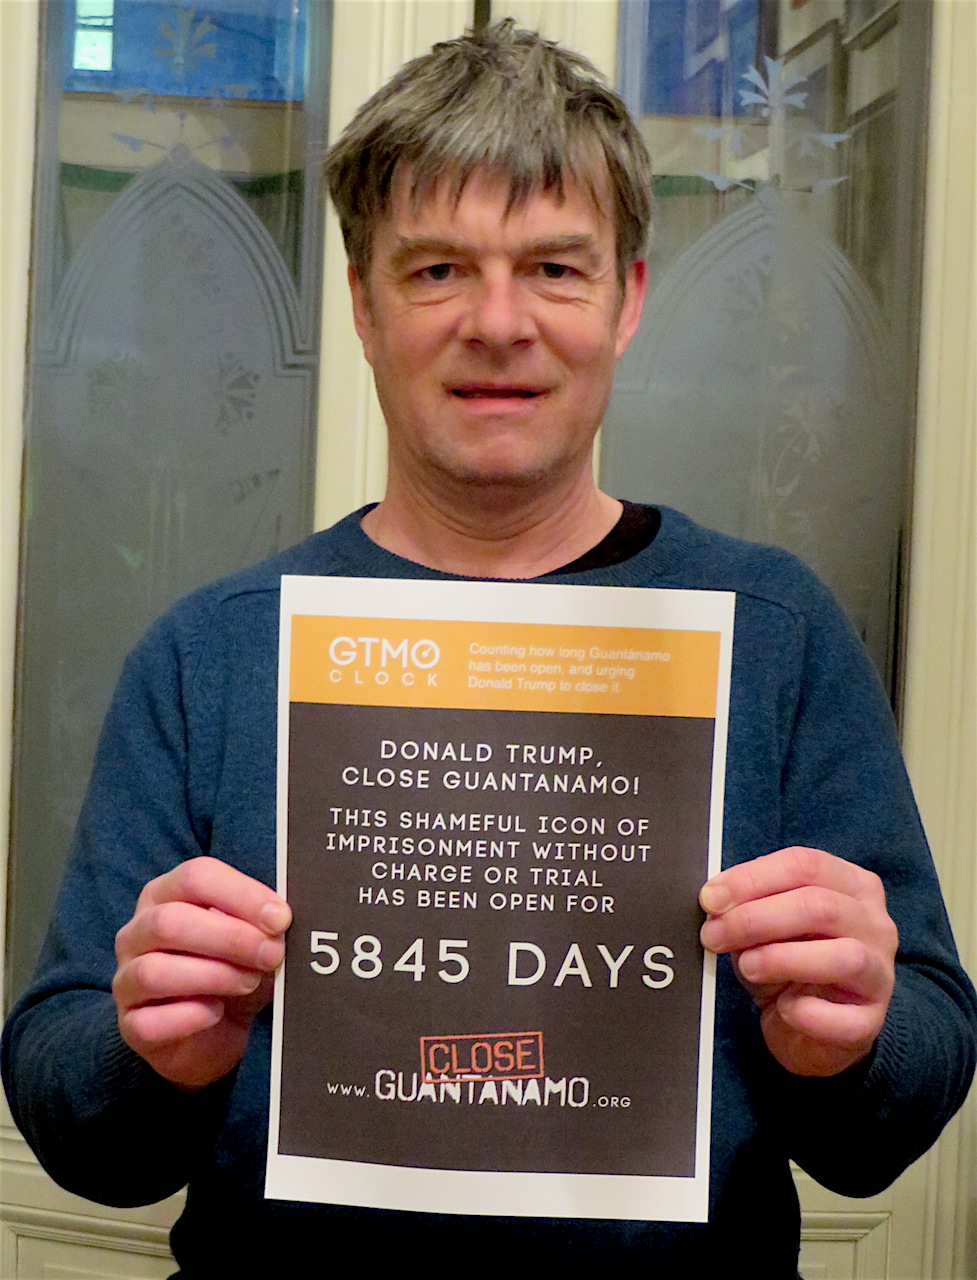 Andy Worthington launching the new Close Guantanamo initiative for 2018, showing how long the prison has been open - with the first poster showing 5,845 days on January 11, 2018, the 16th anniversary of its opening. Throughout the year, the Gitmo Clock website will count exactly how many days, hours, minutes an seconds Guantanamo has been open, and posters can be printed from the page for people to take photos with and send to the Close Guantanamo campaign.